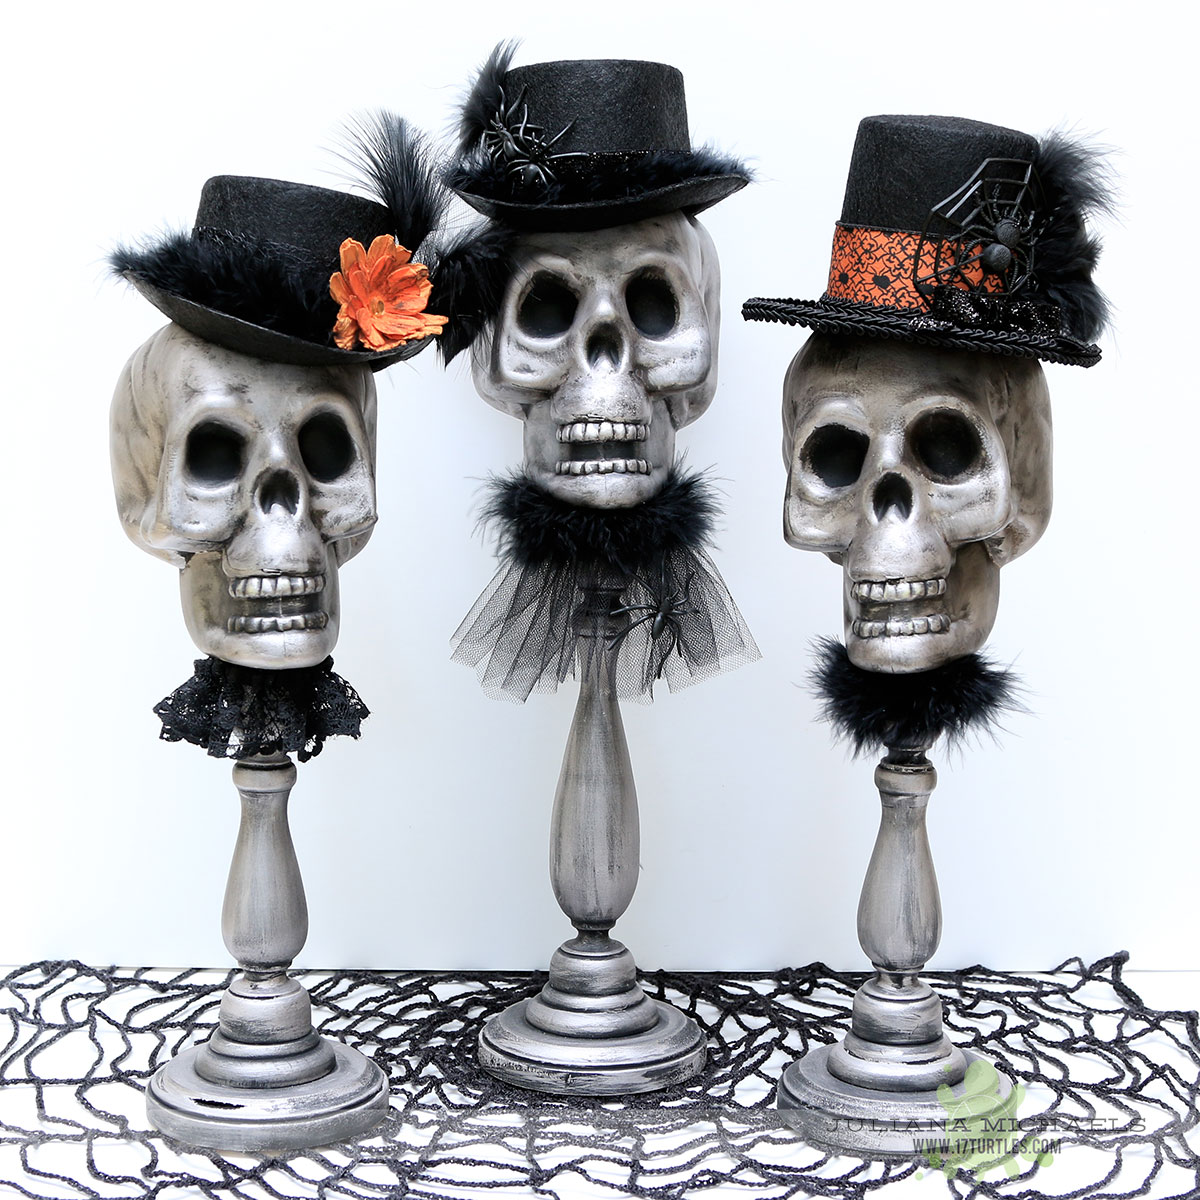 Halloween skull decorations - Dollar Tree Halloween Decor Using Plastic Skulls By Juliana Michaels